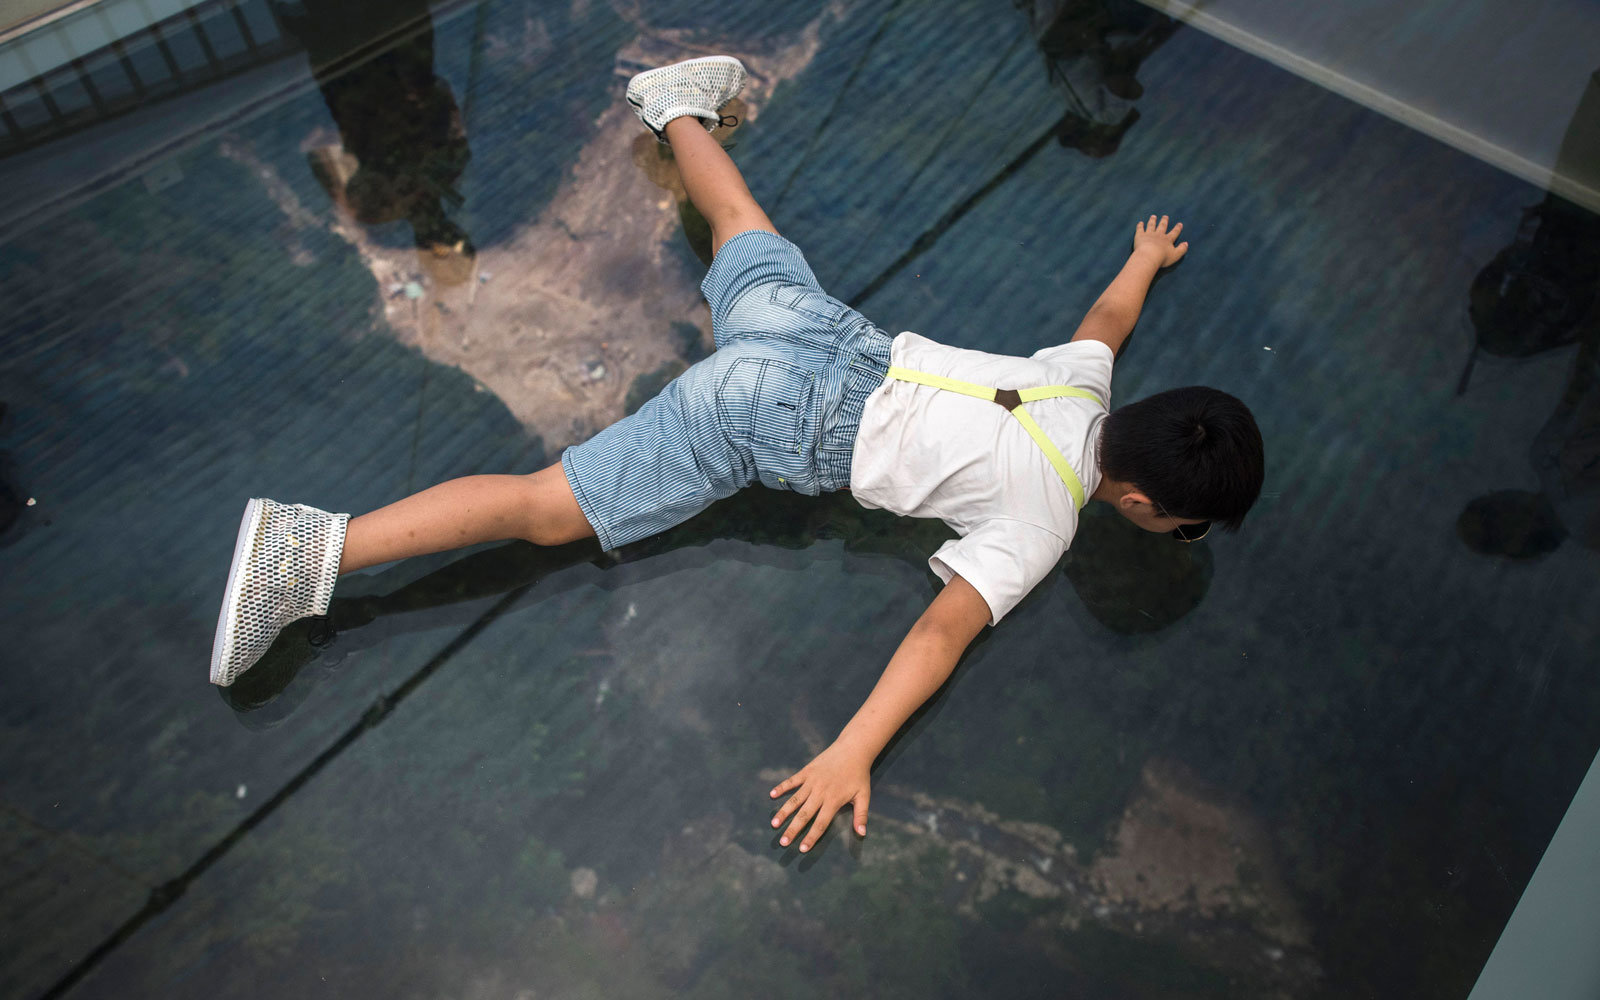 A tourist lays against the glass.